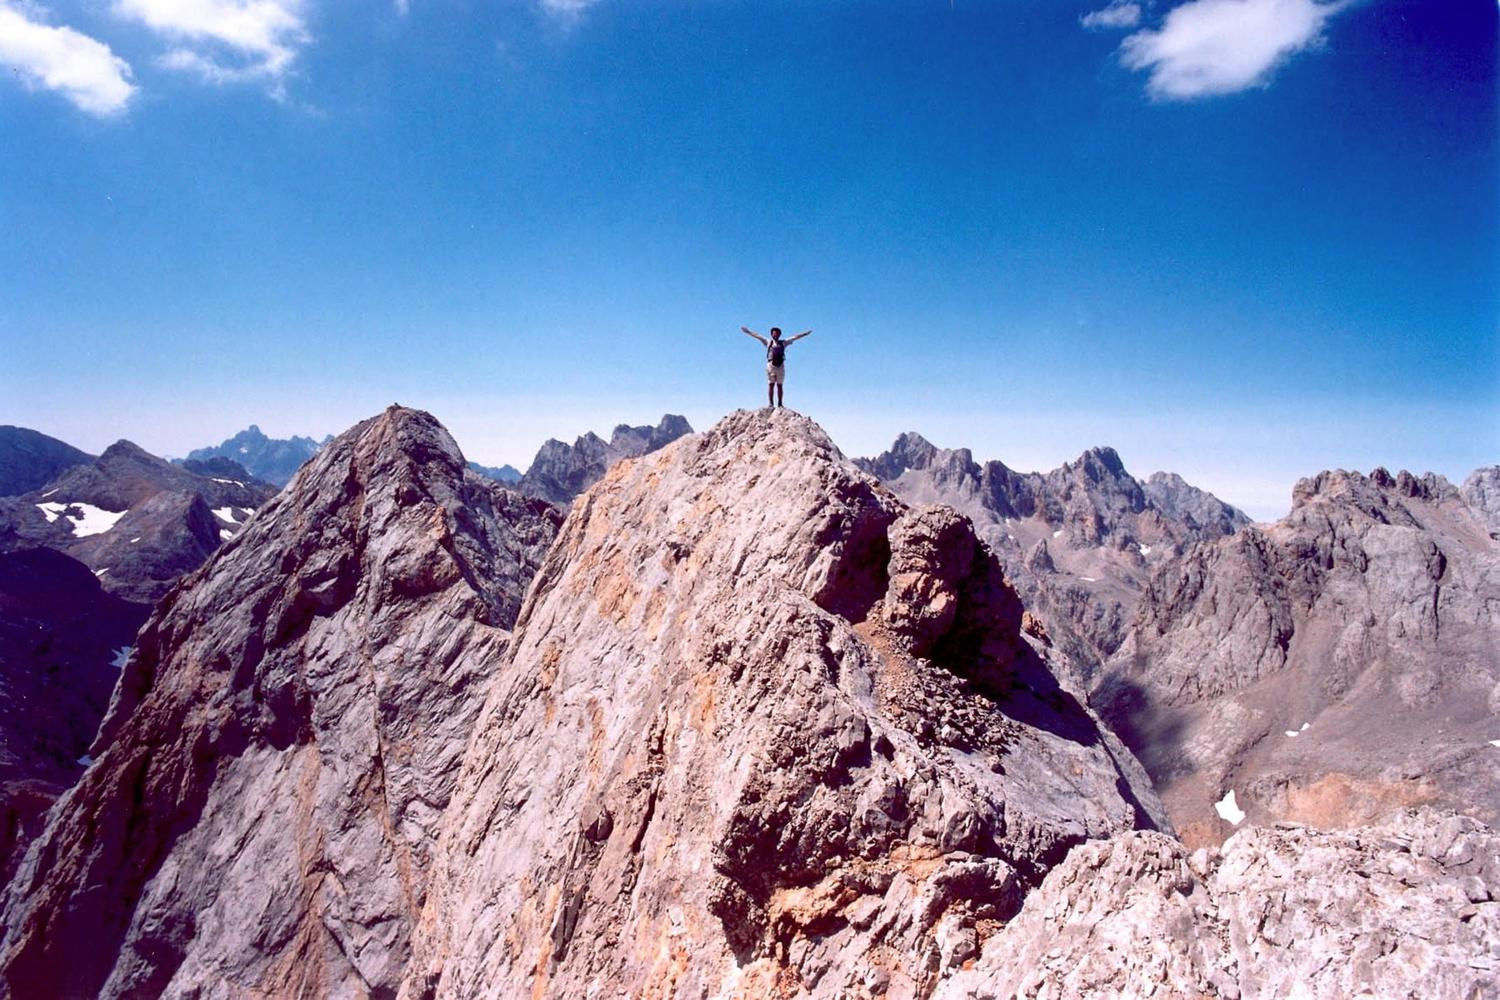 Standing high on the peak of Horcados Rojos in the Picos de Europa